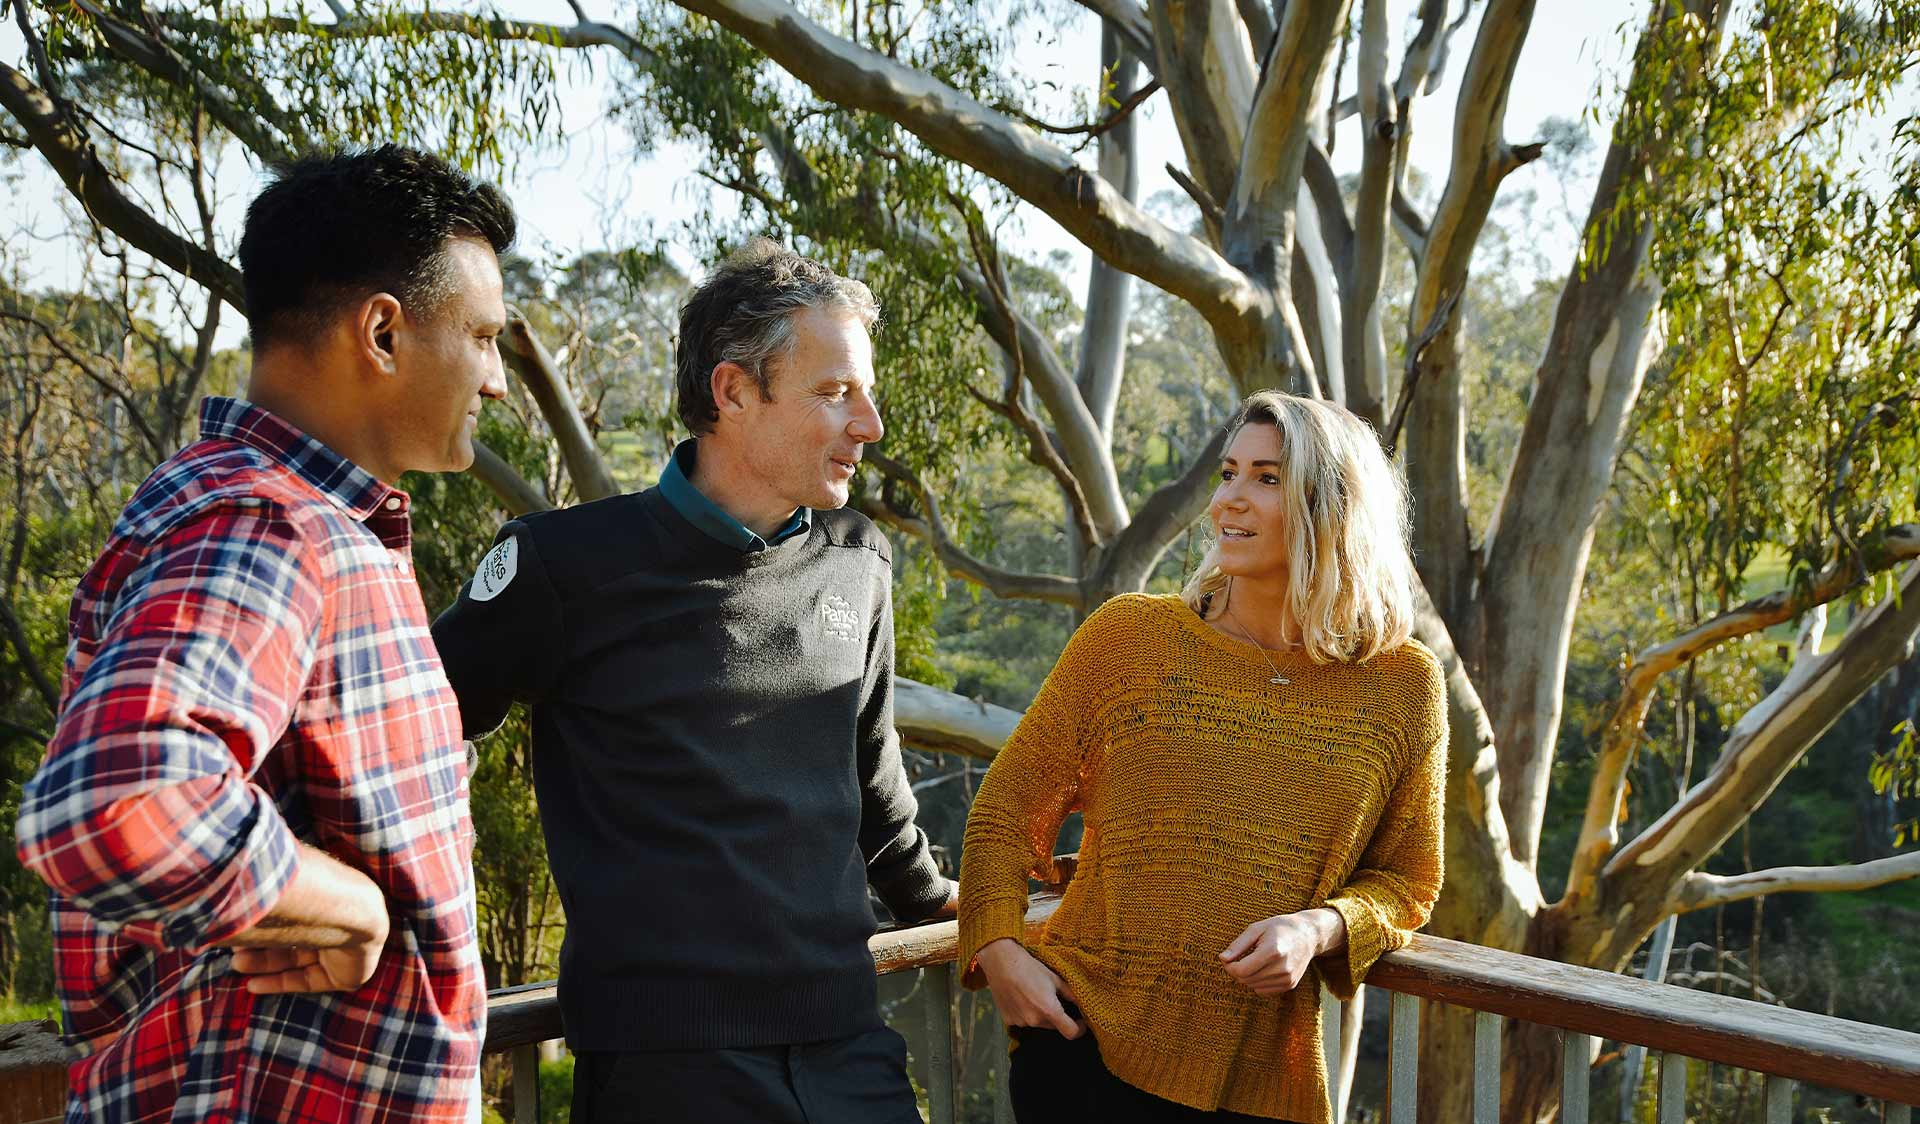 A ranger chats with two park goers in Yarra Bend Park.